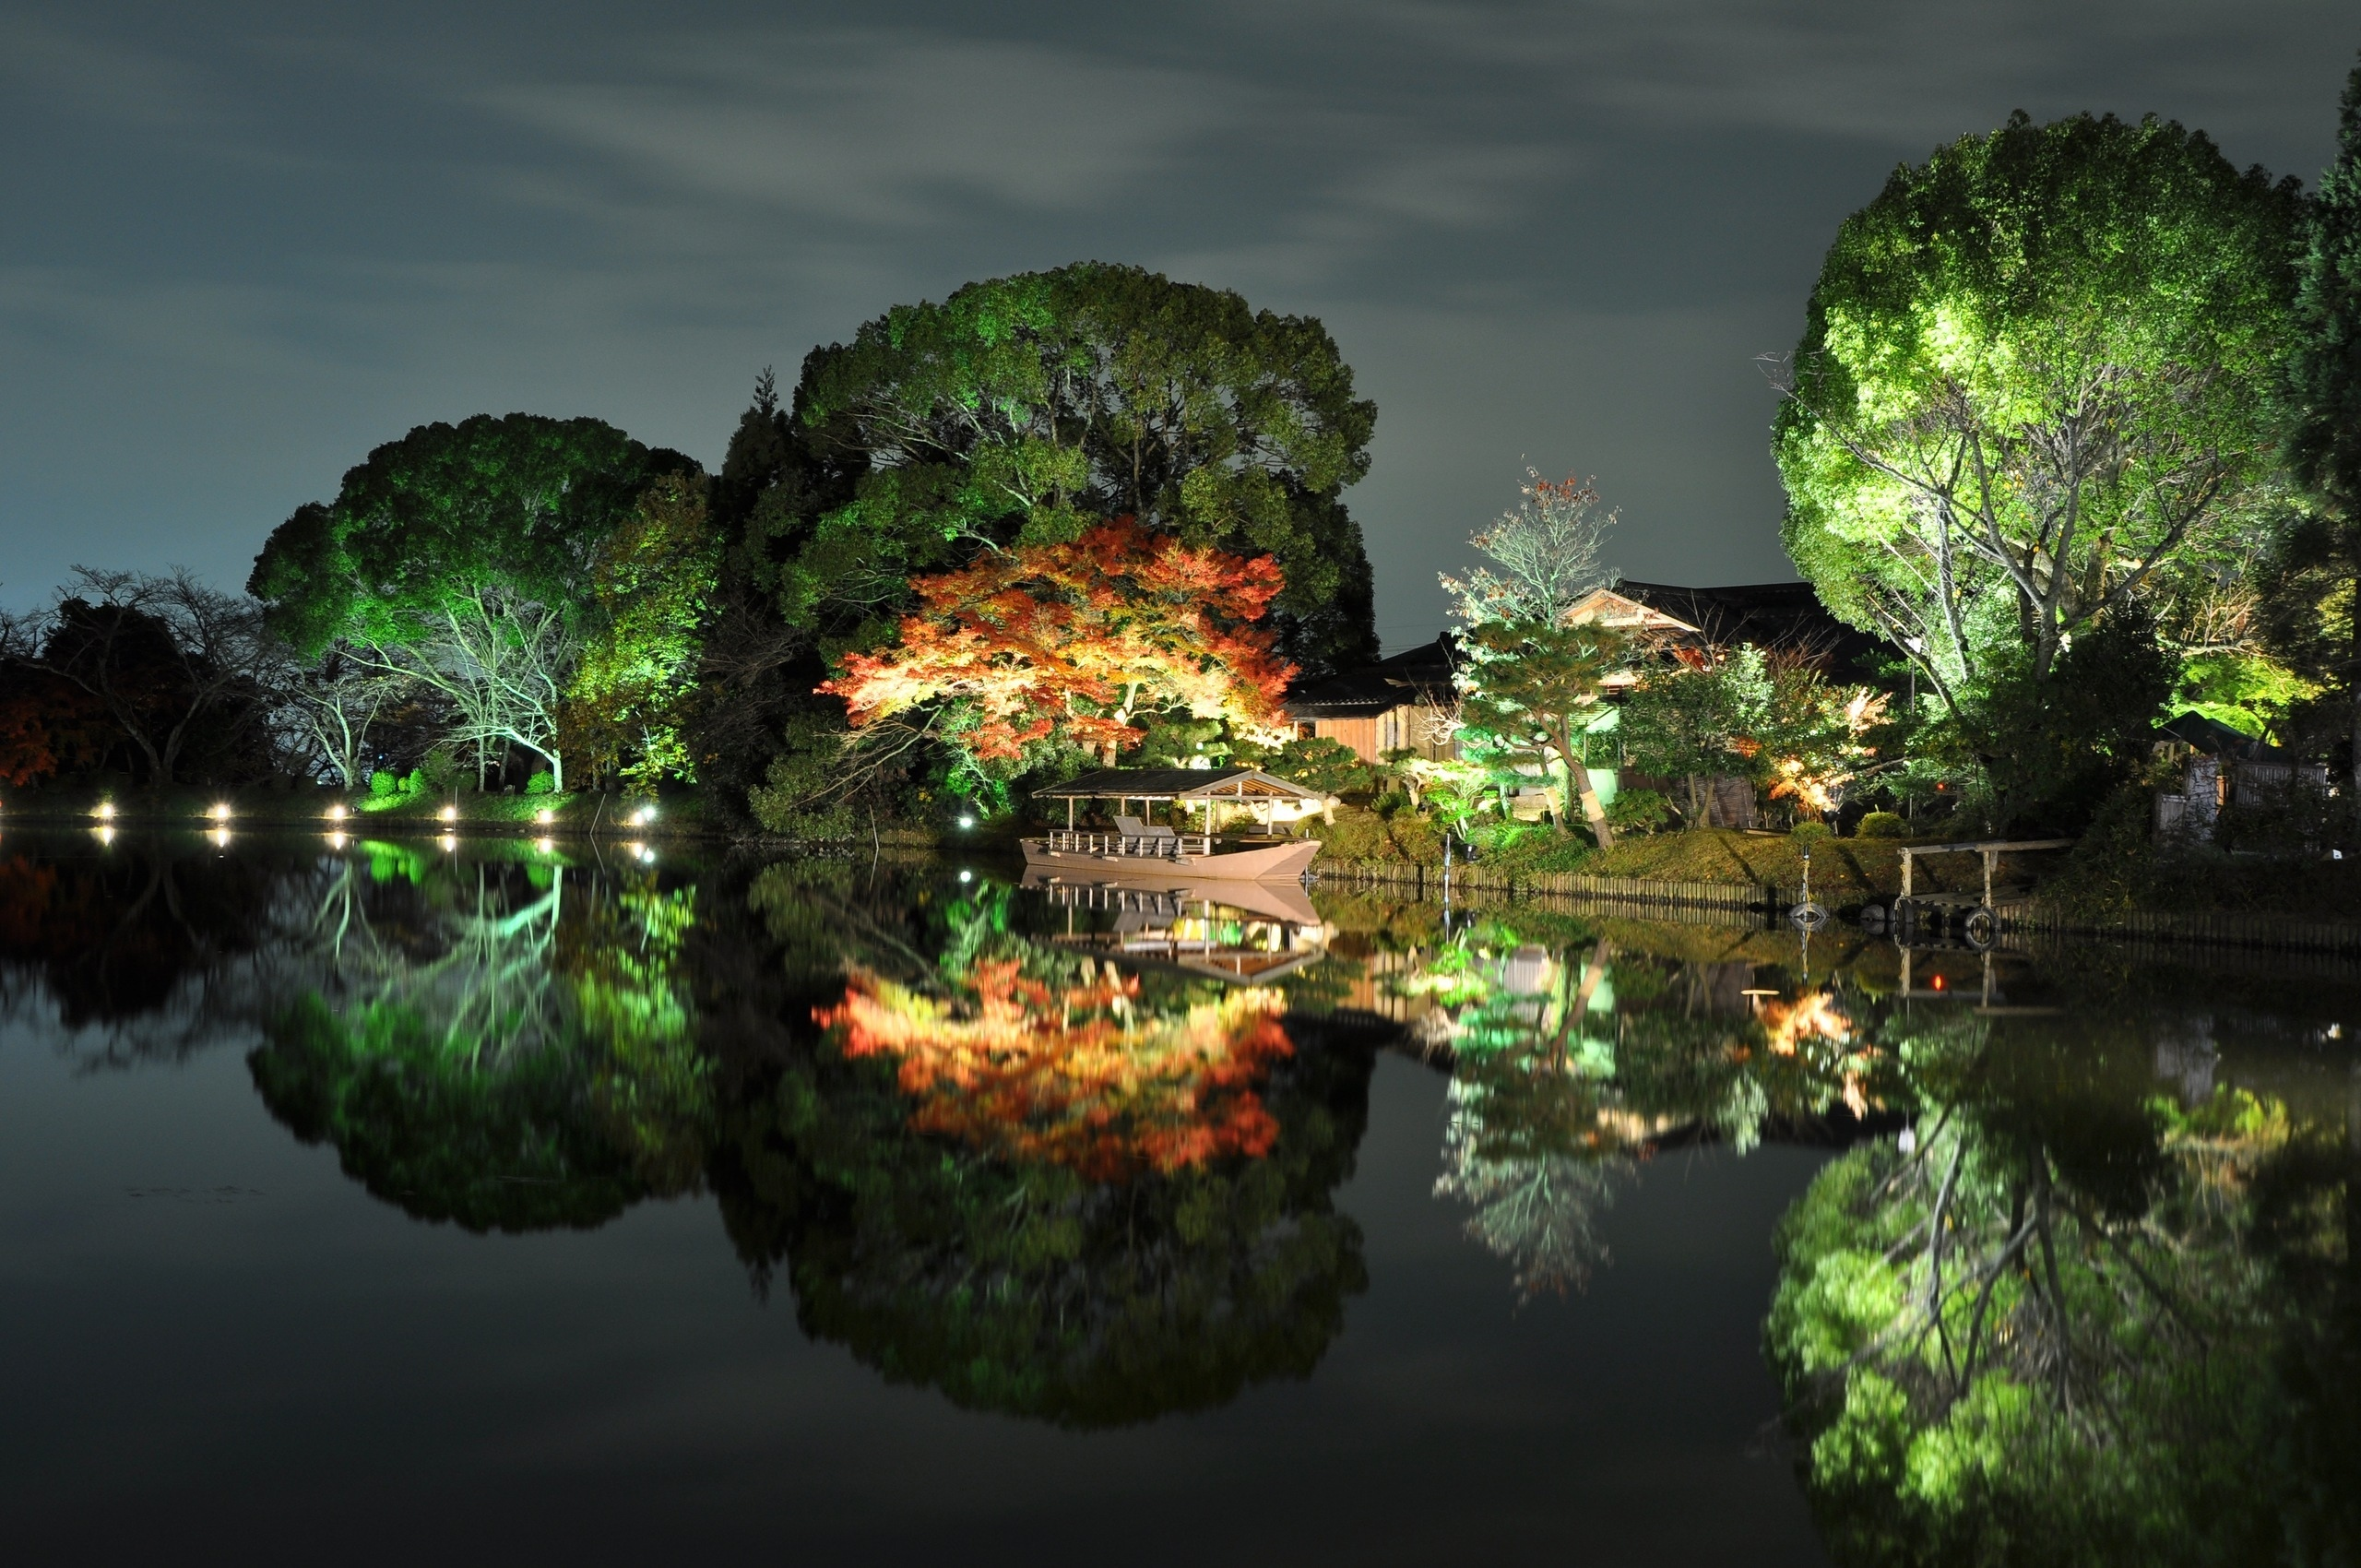 Trees river japan house boat autumn reflection wallpaper   2560x1700 725